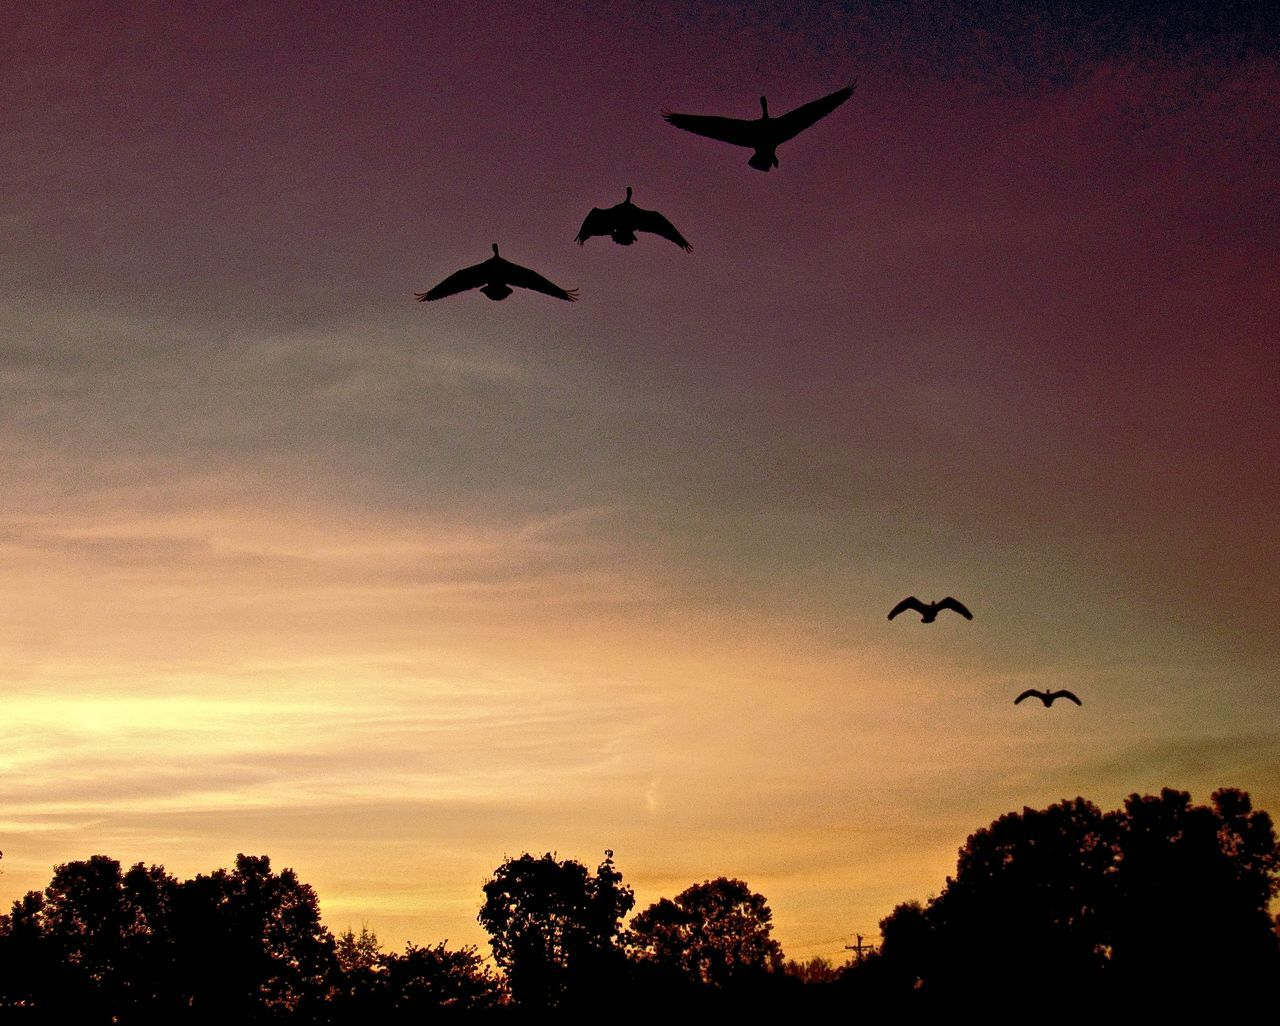 flying, bird, sunset, animals in the wild, silhouette, animal themes, mid-air, spread wings, animal wildlife, nature, wildlife, beauty in nature, low angle view, sky, outdoors, no people, scenics, tree, day